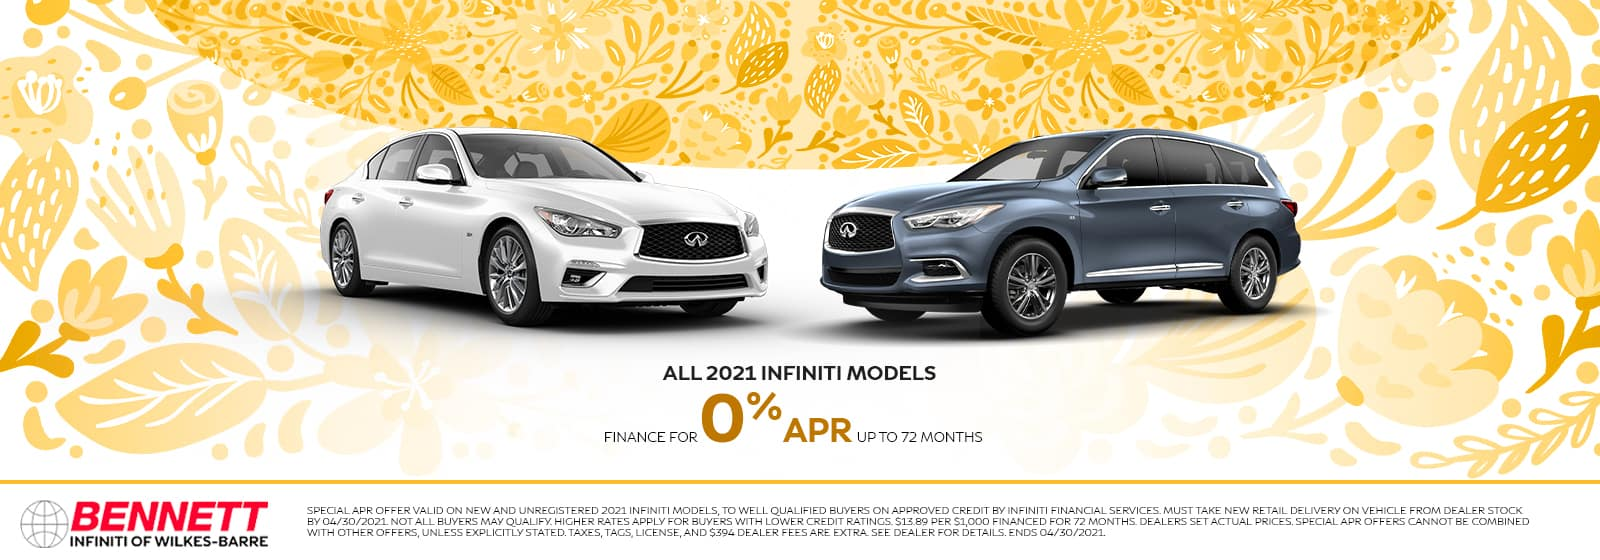 All 2021 INFINITI Models - finance for 0% APR up to 72 months.